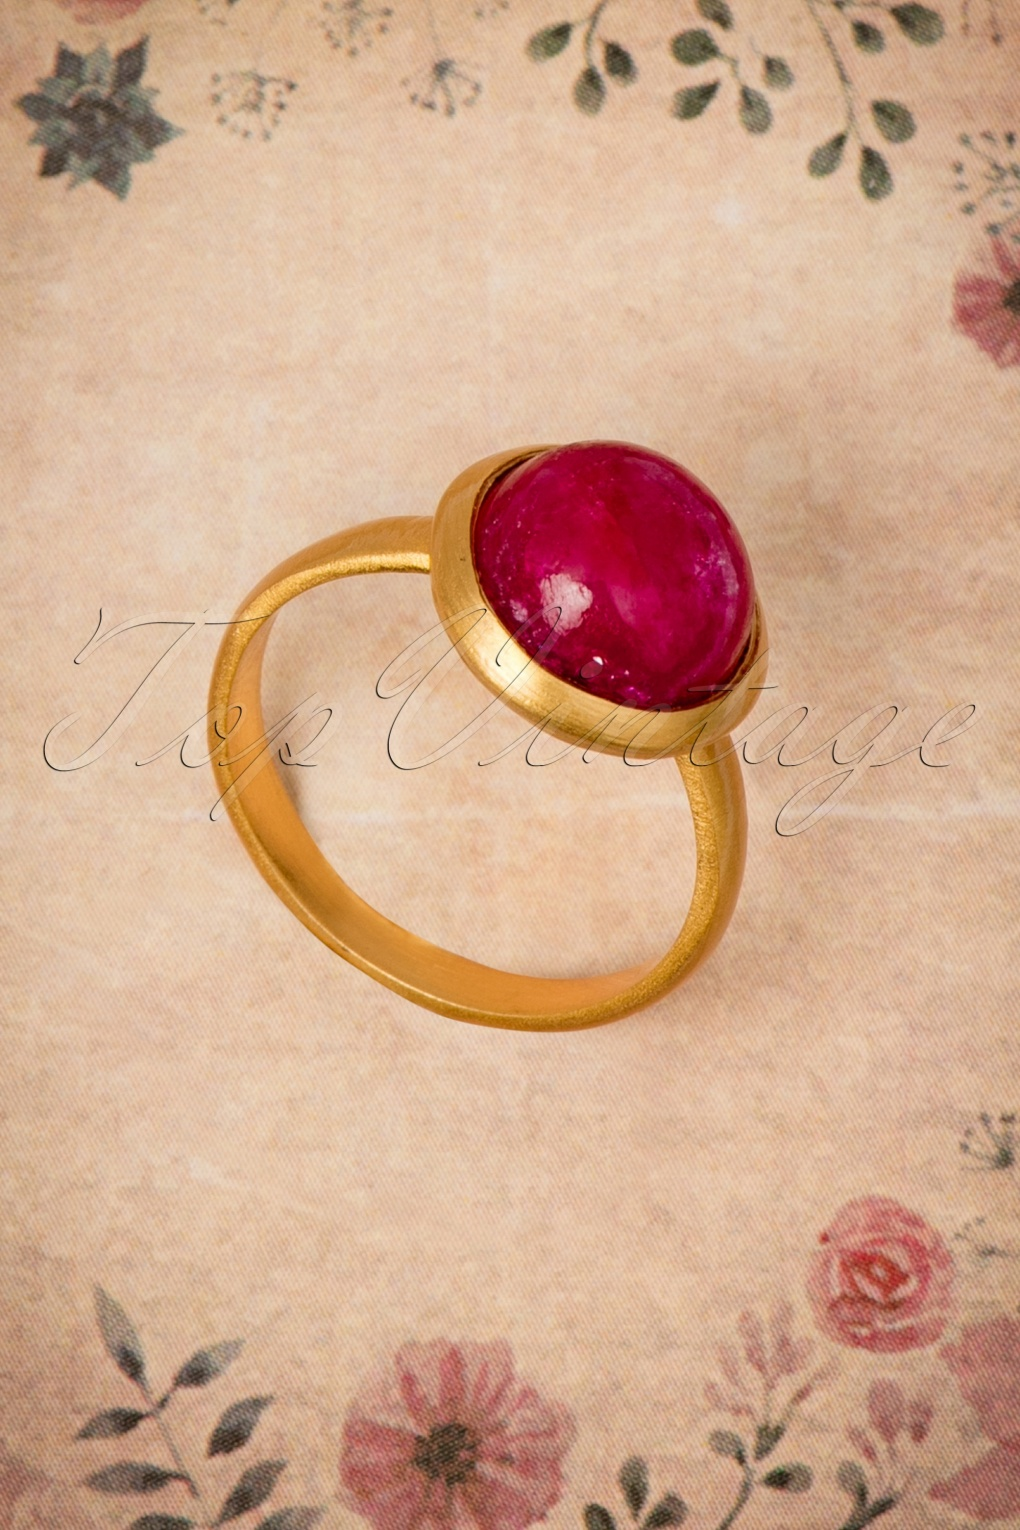 1960s Costume Jewelry – 1960s Style Jewelry 60s Ruby Full Moon Ring in Gold £53.90 AT vintagedancer.com